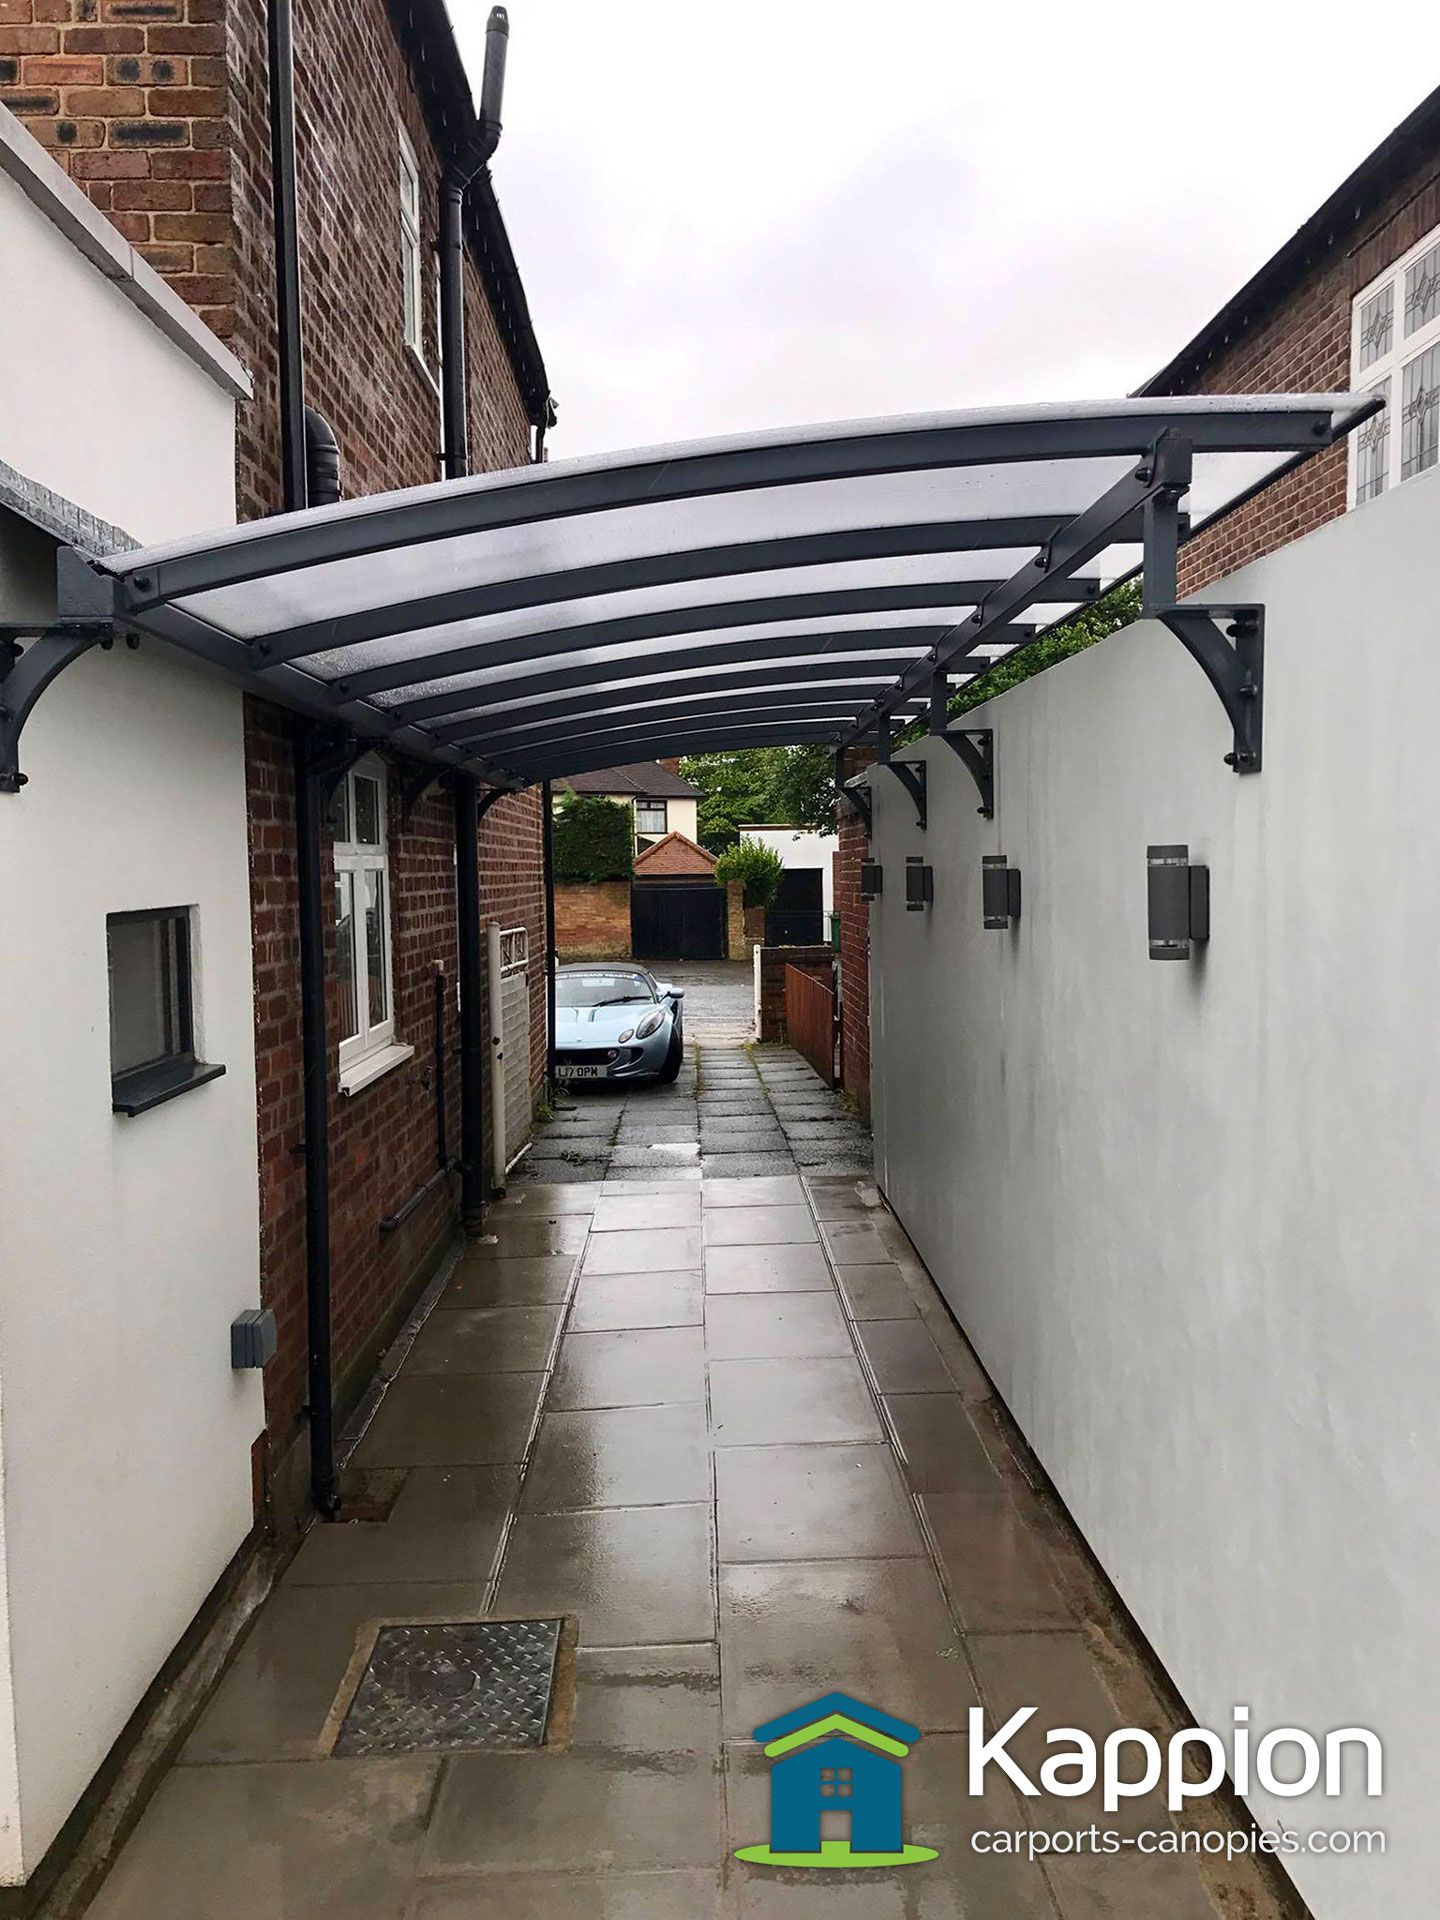 Driveway and Bungalow Carports Custom designed and manufactured